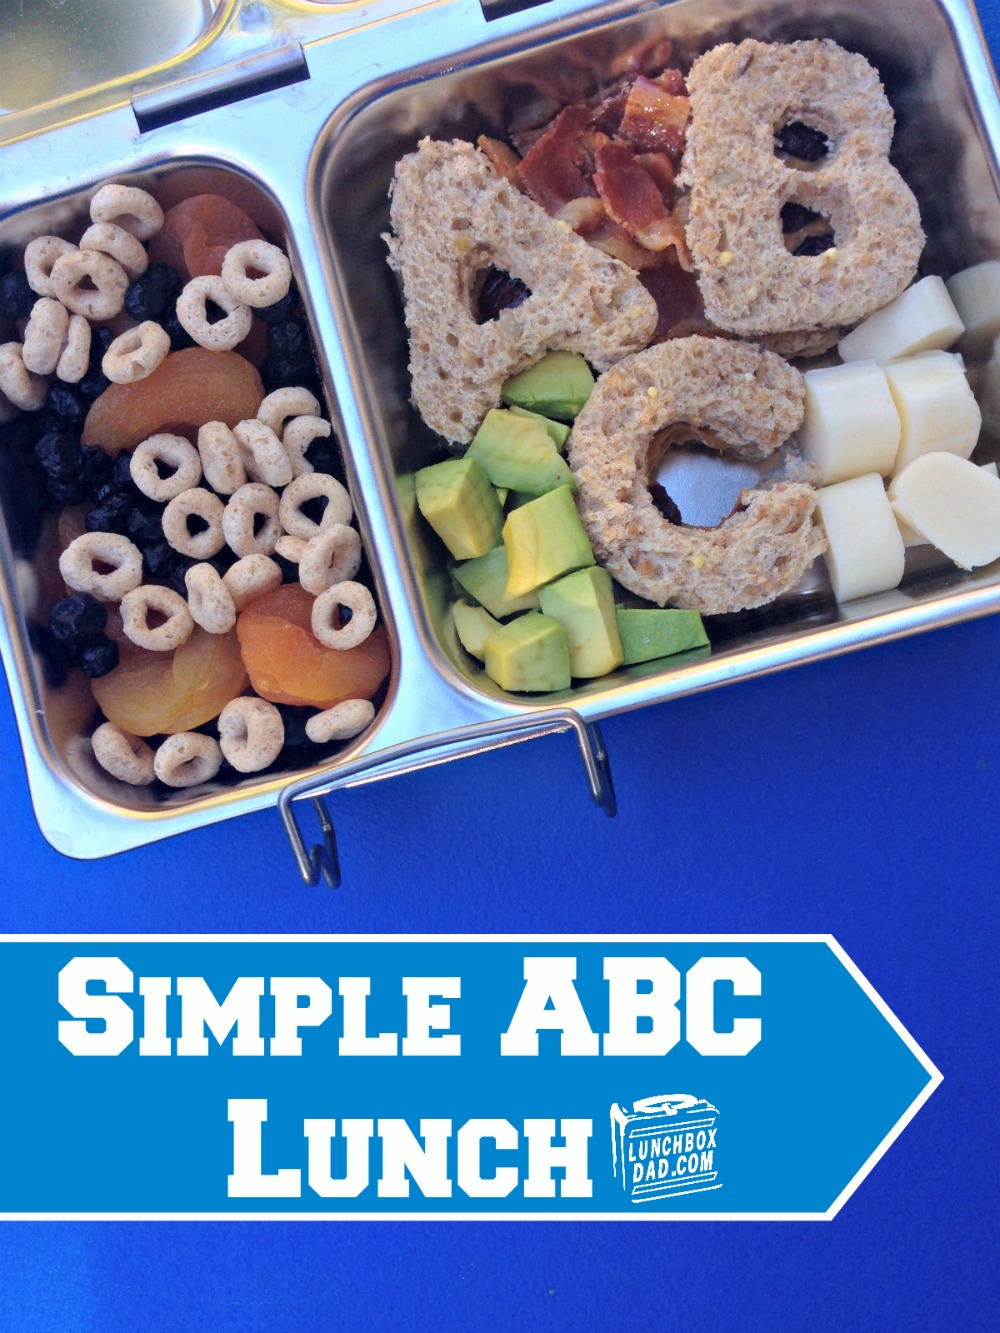 Simple ABC Lunch for Back to School